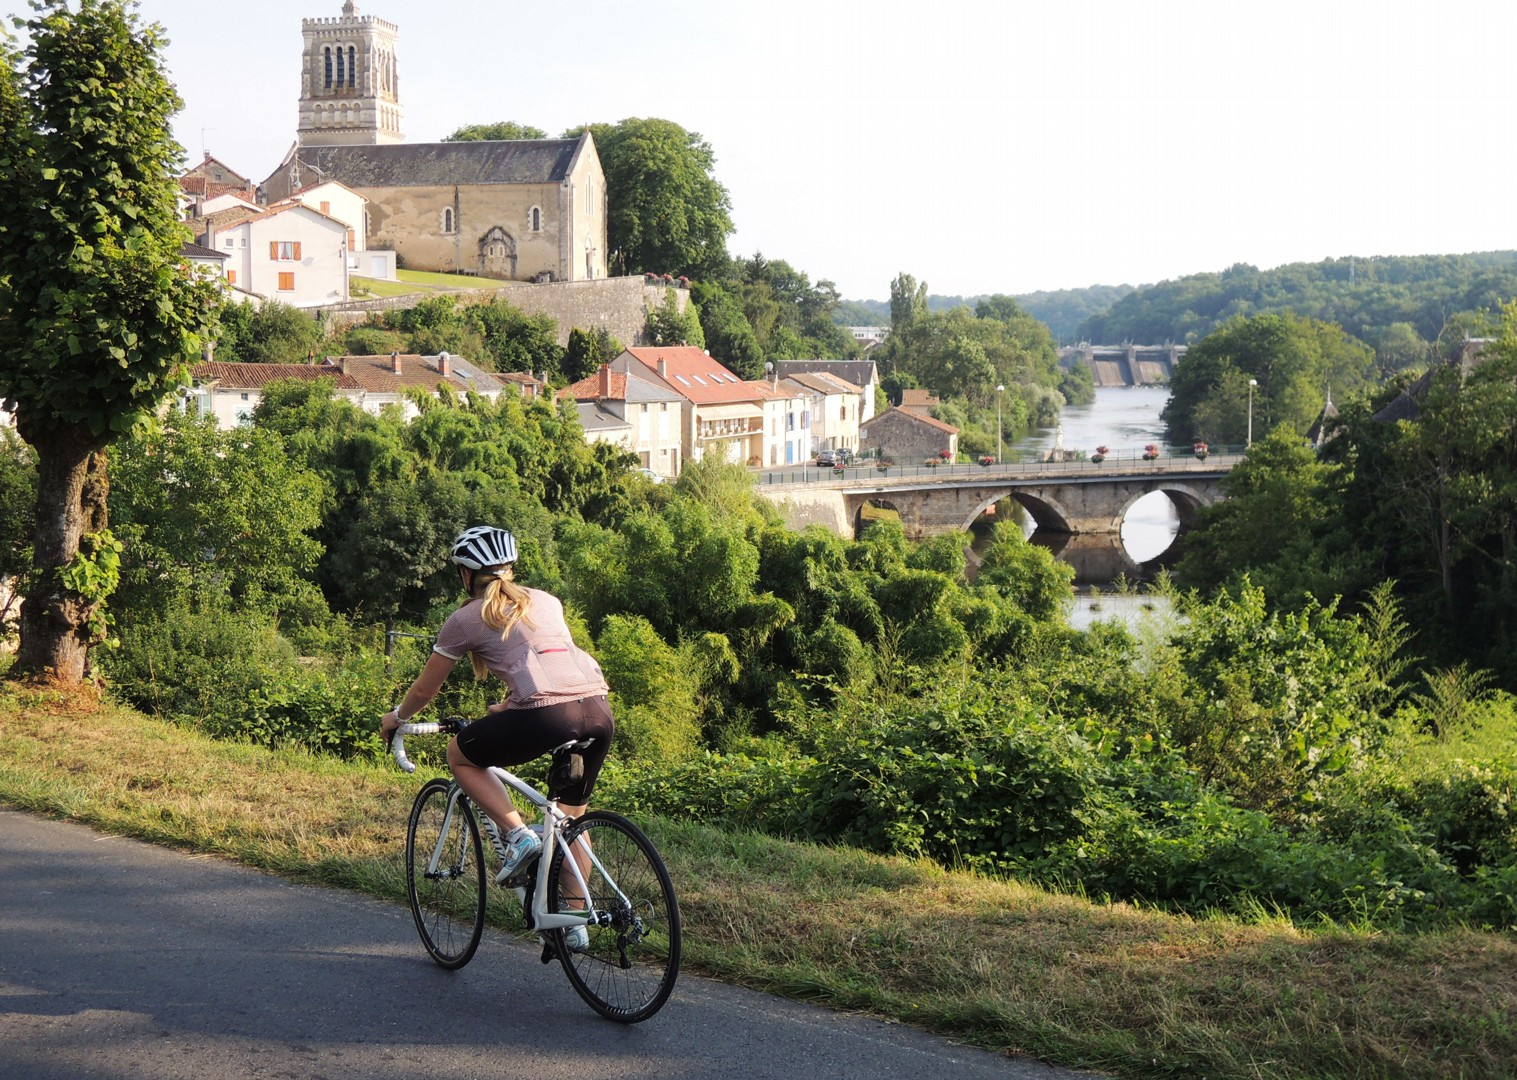 france-st-malo-to-nice.jpg - France - St Malo to Nice Classic (15 days) - Guided Road Cycling Holiday - Road Cycling